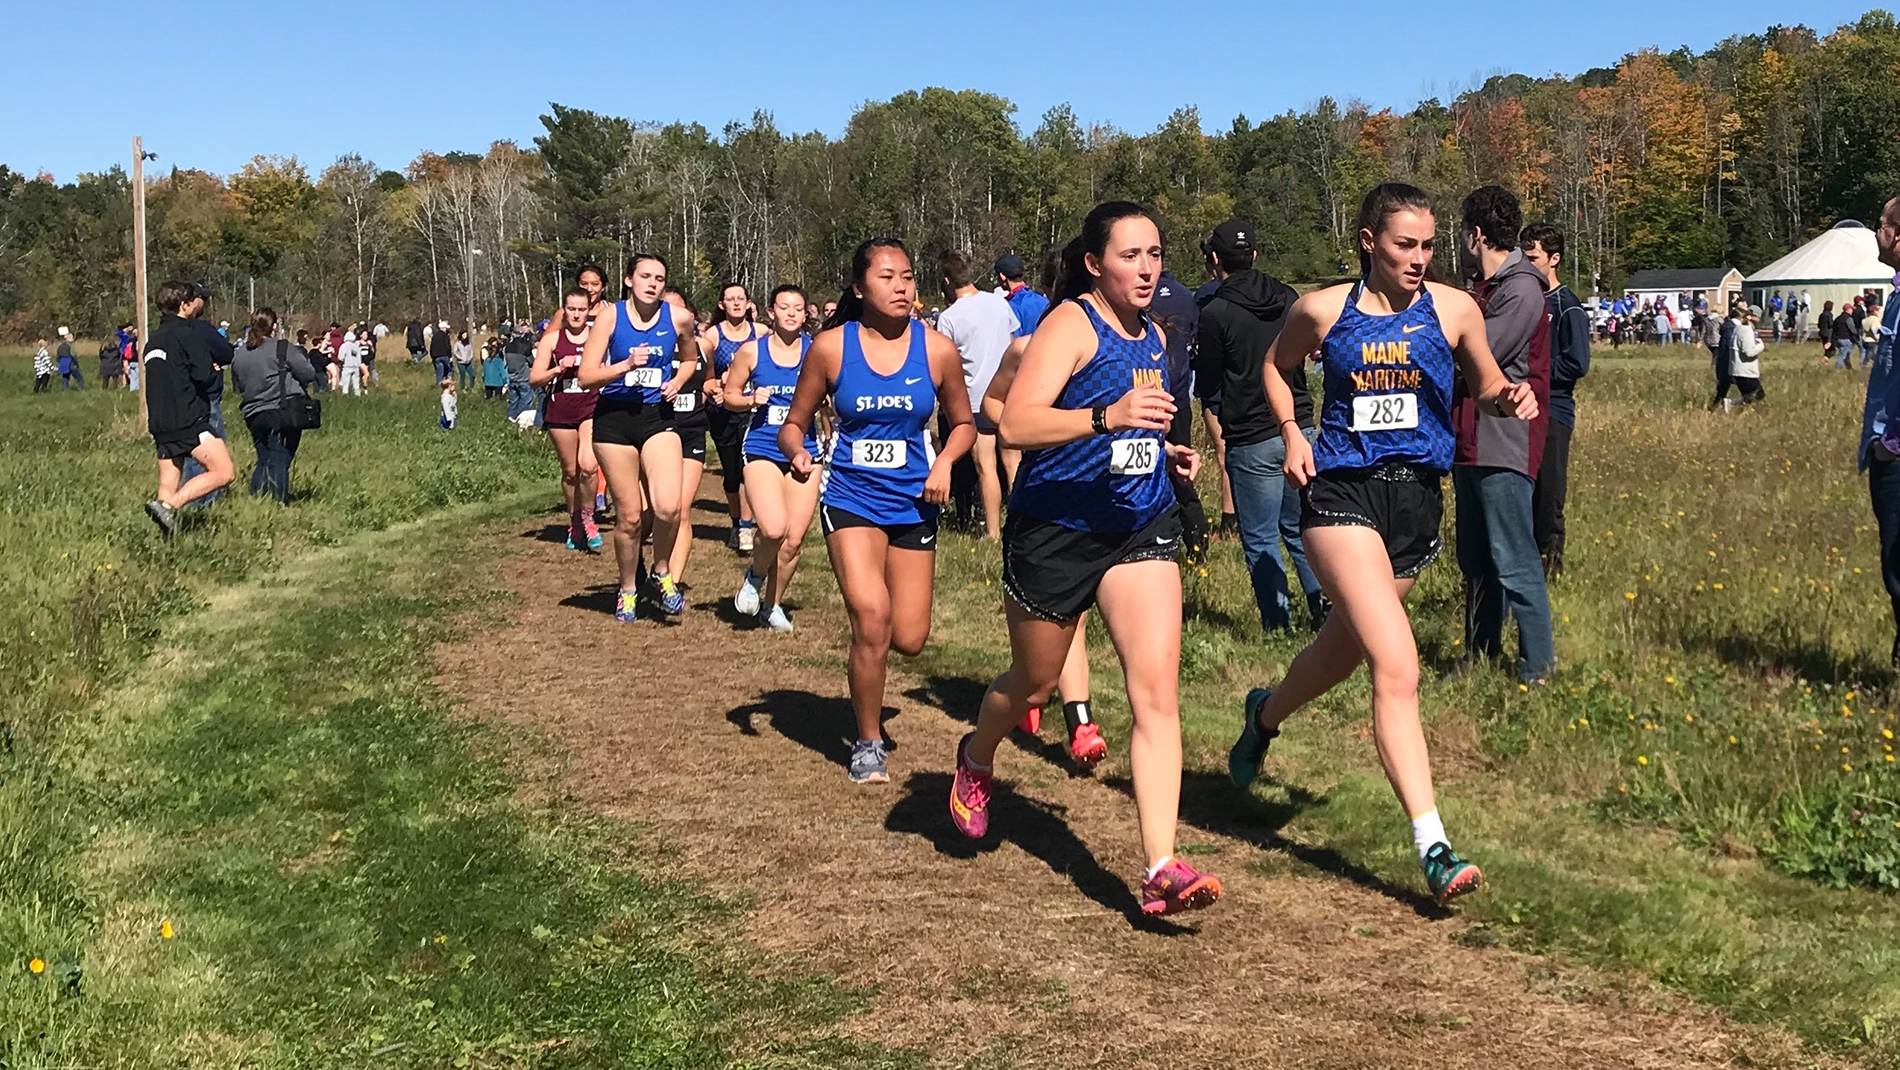 Mariners Race at State of Maine